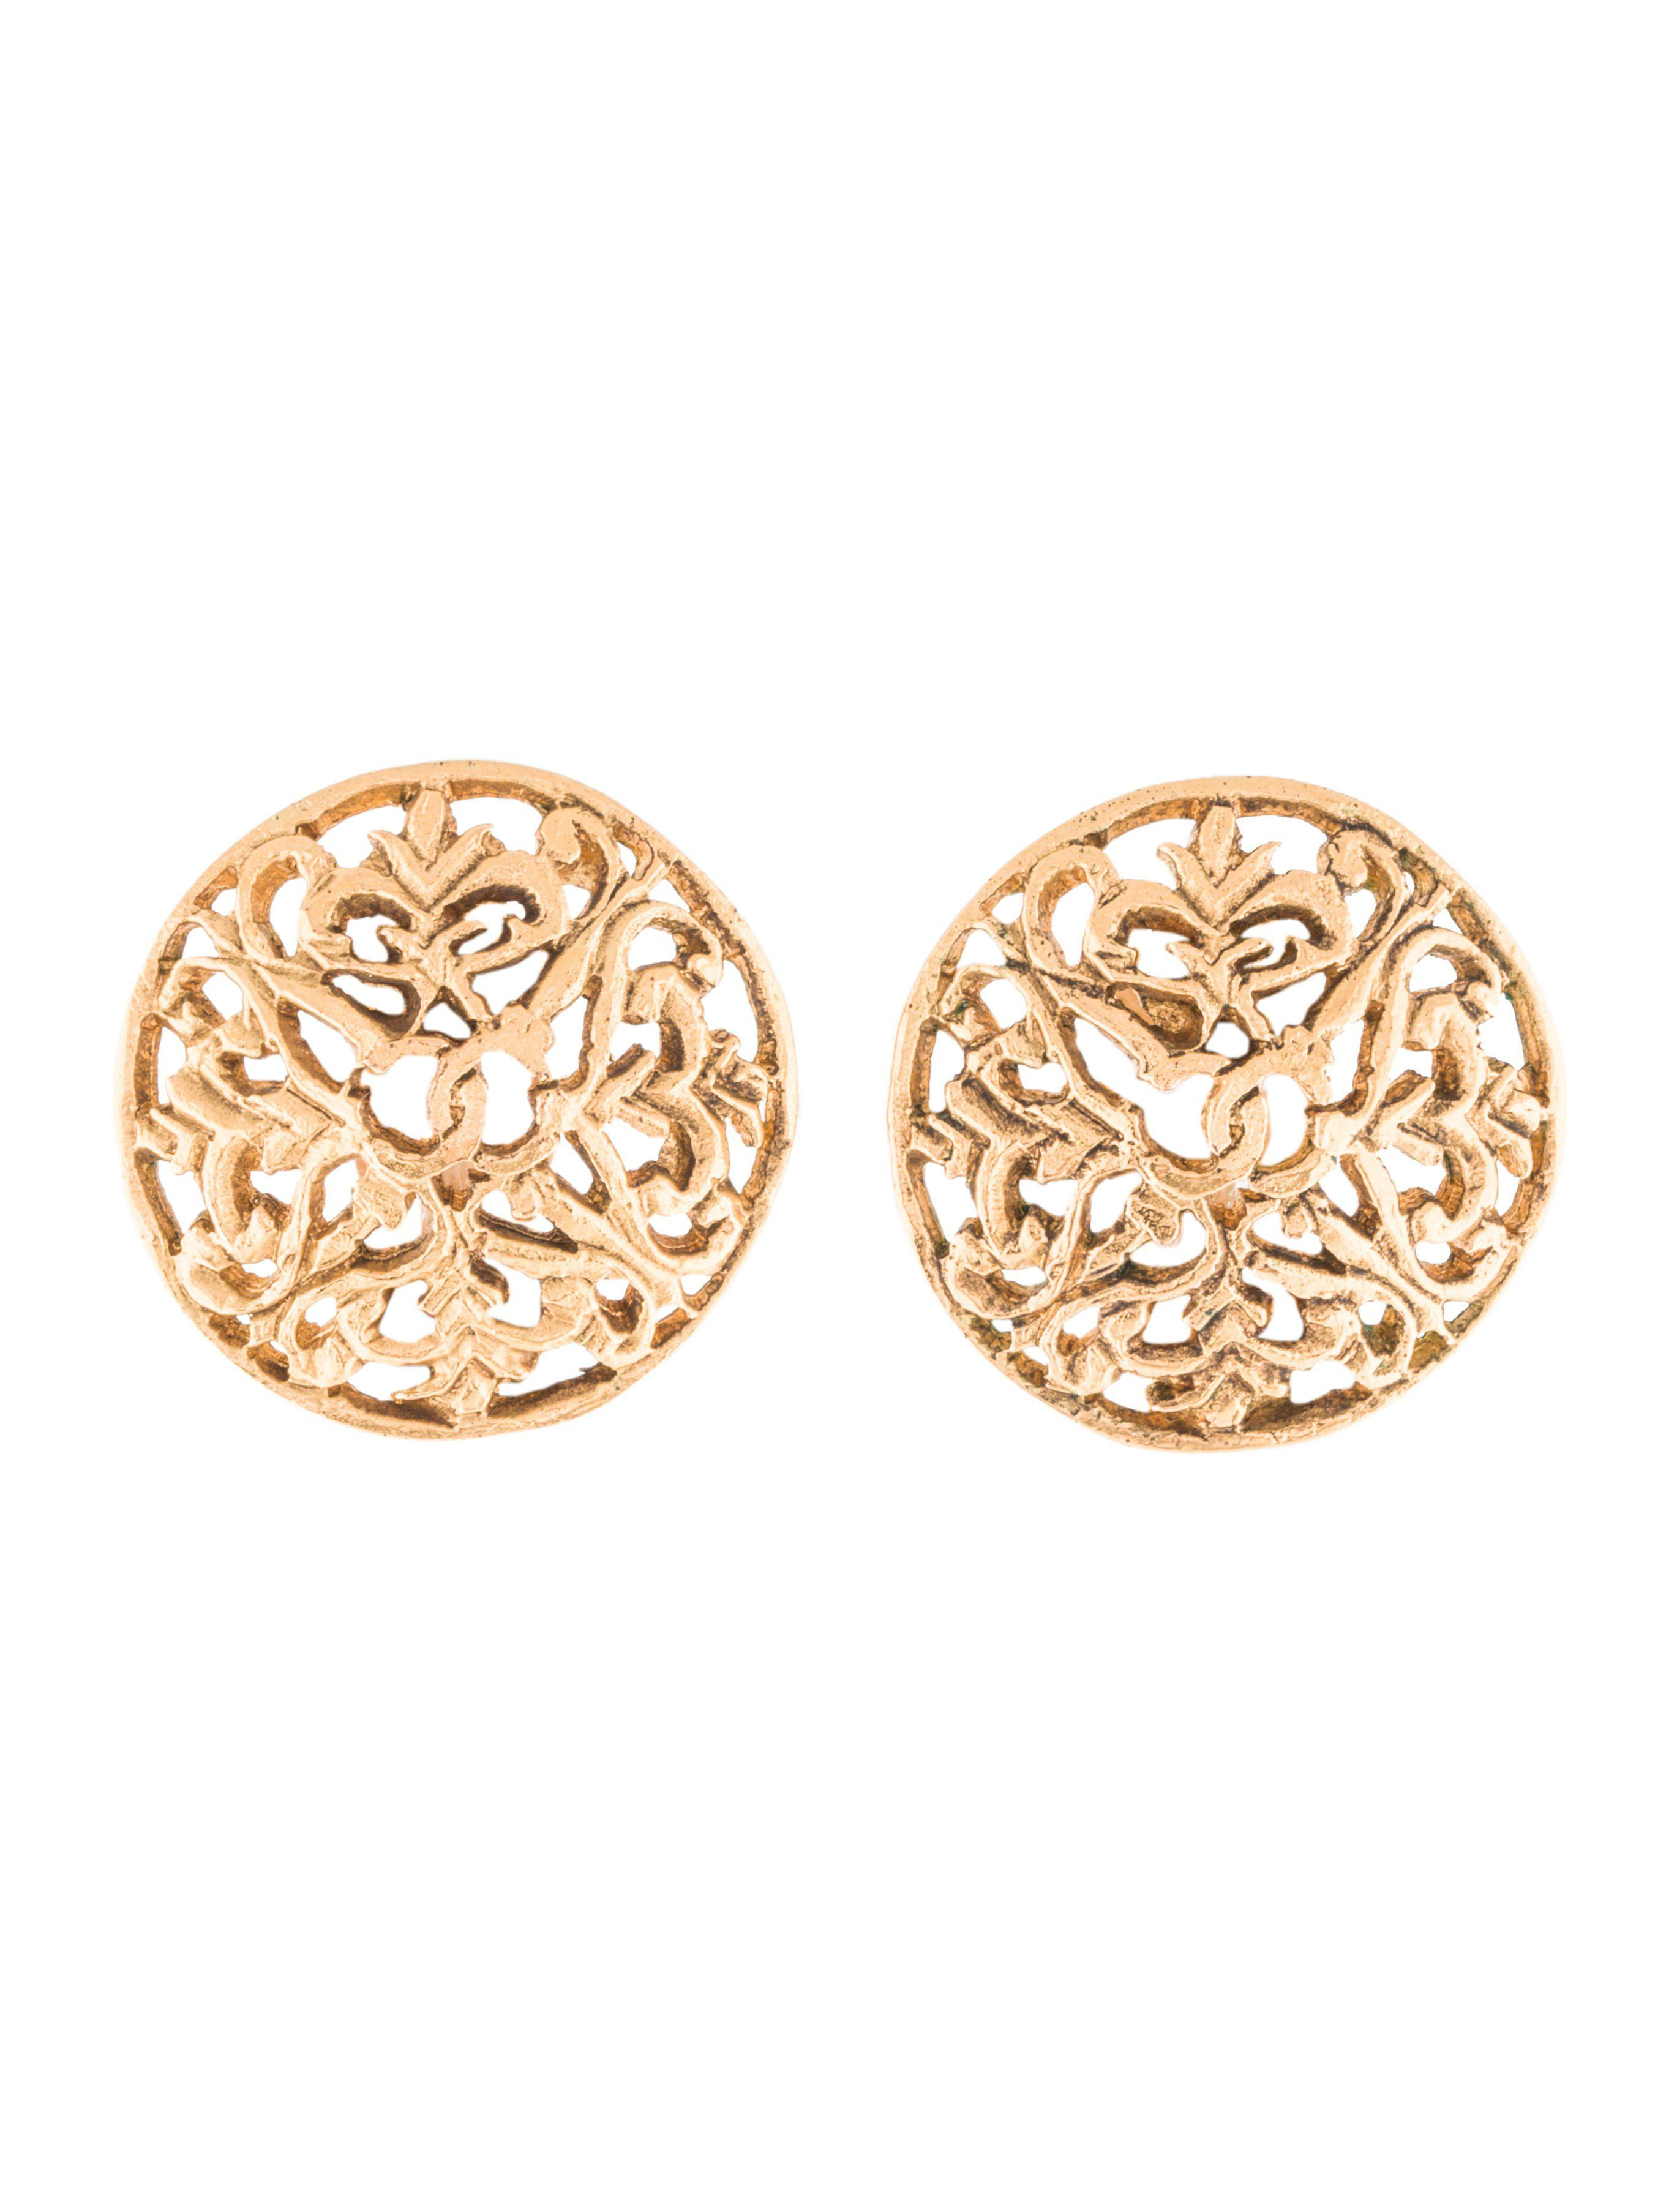 clips chanel product tone gold vintage pearl faux earrings